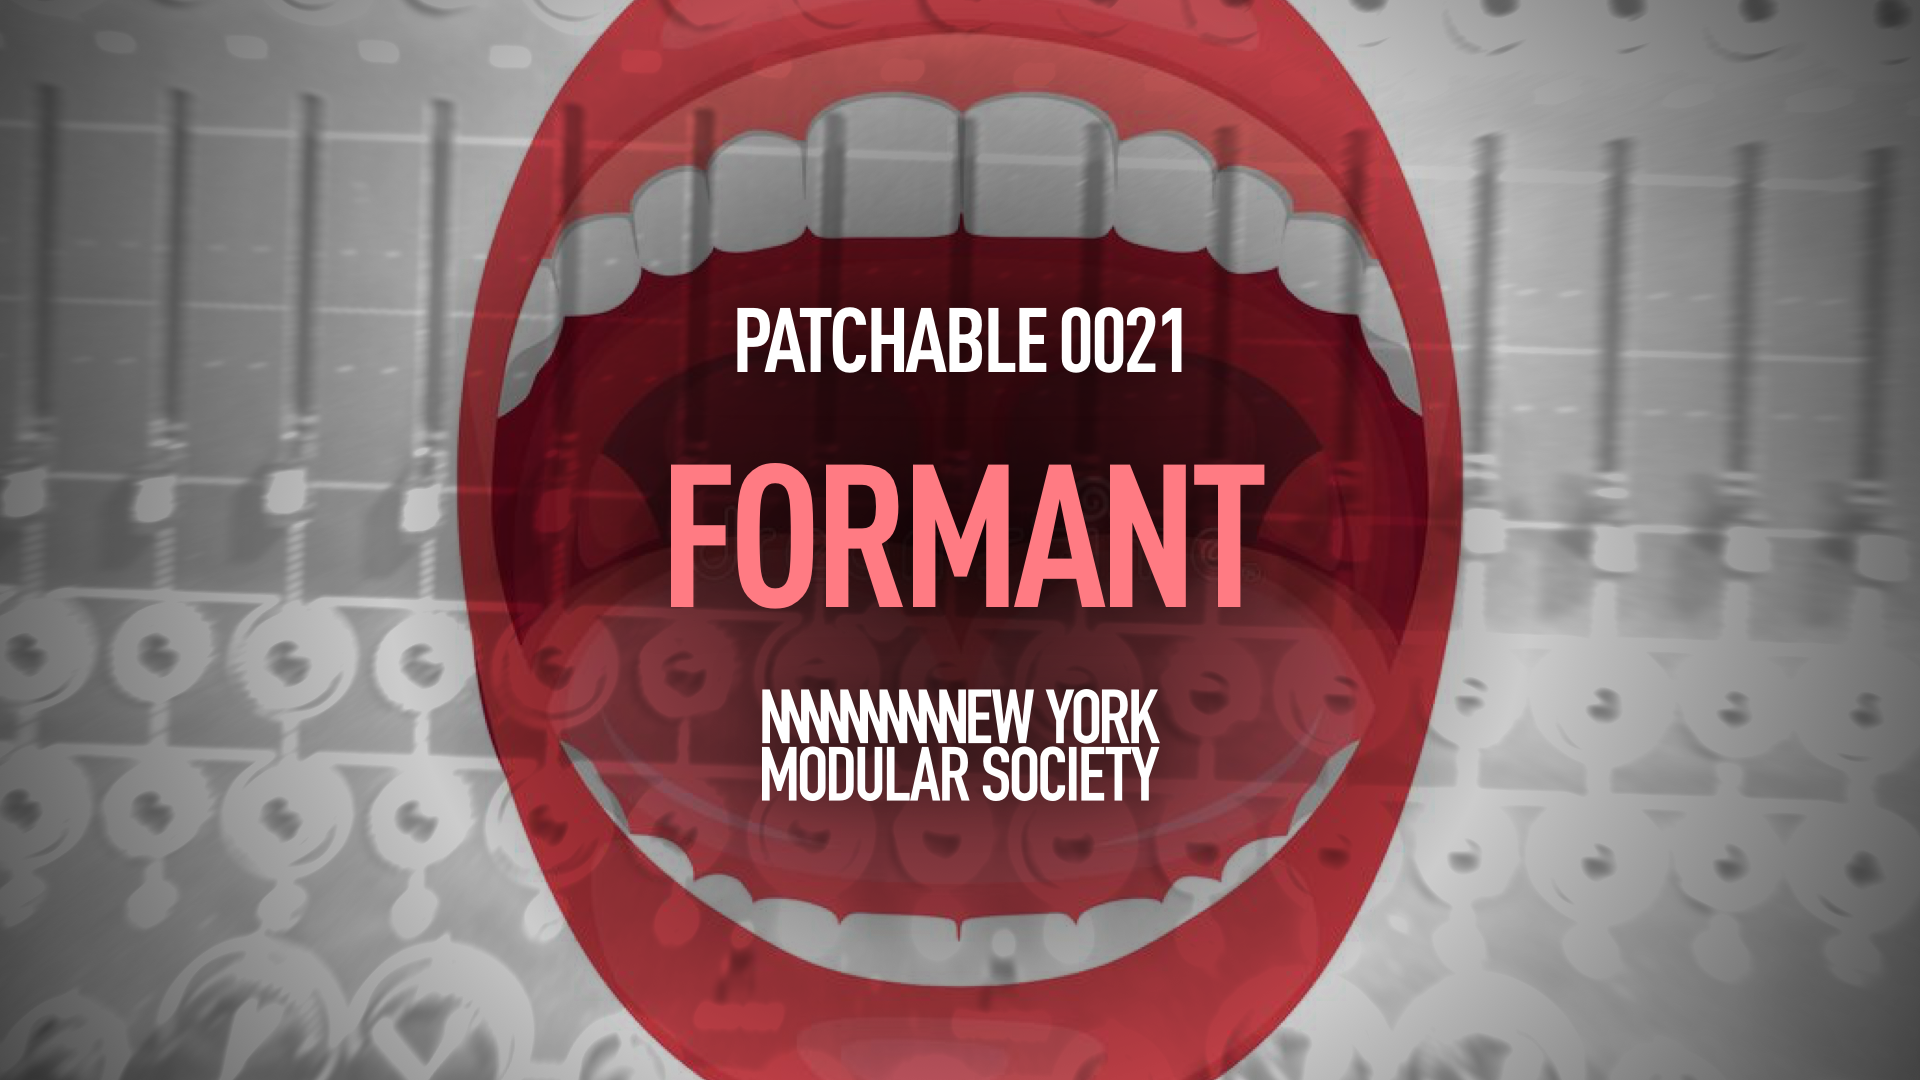 Patchable 0021